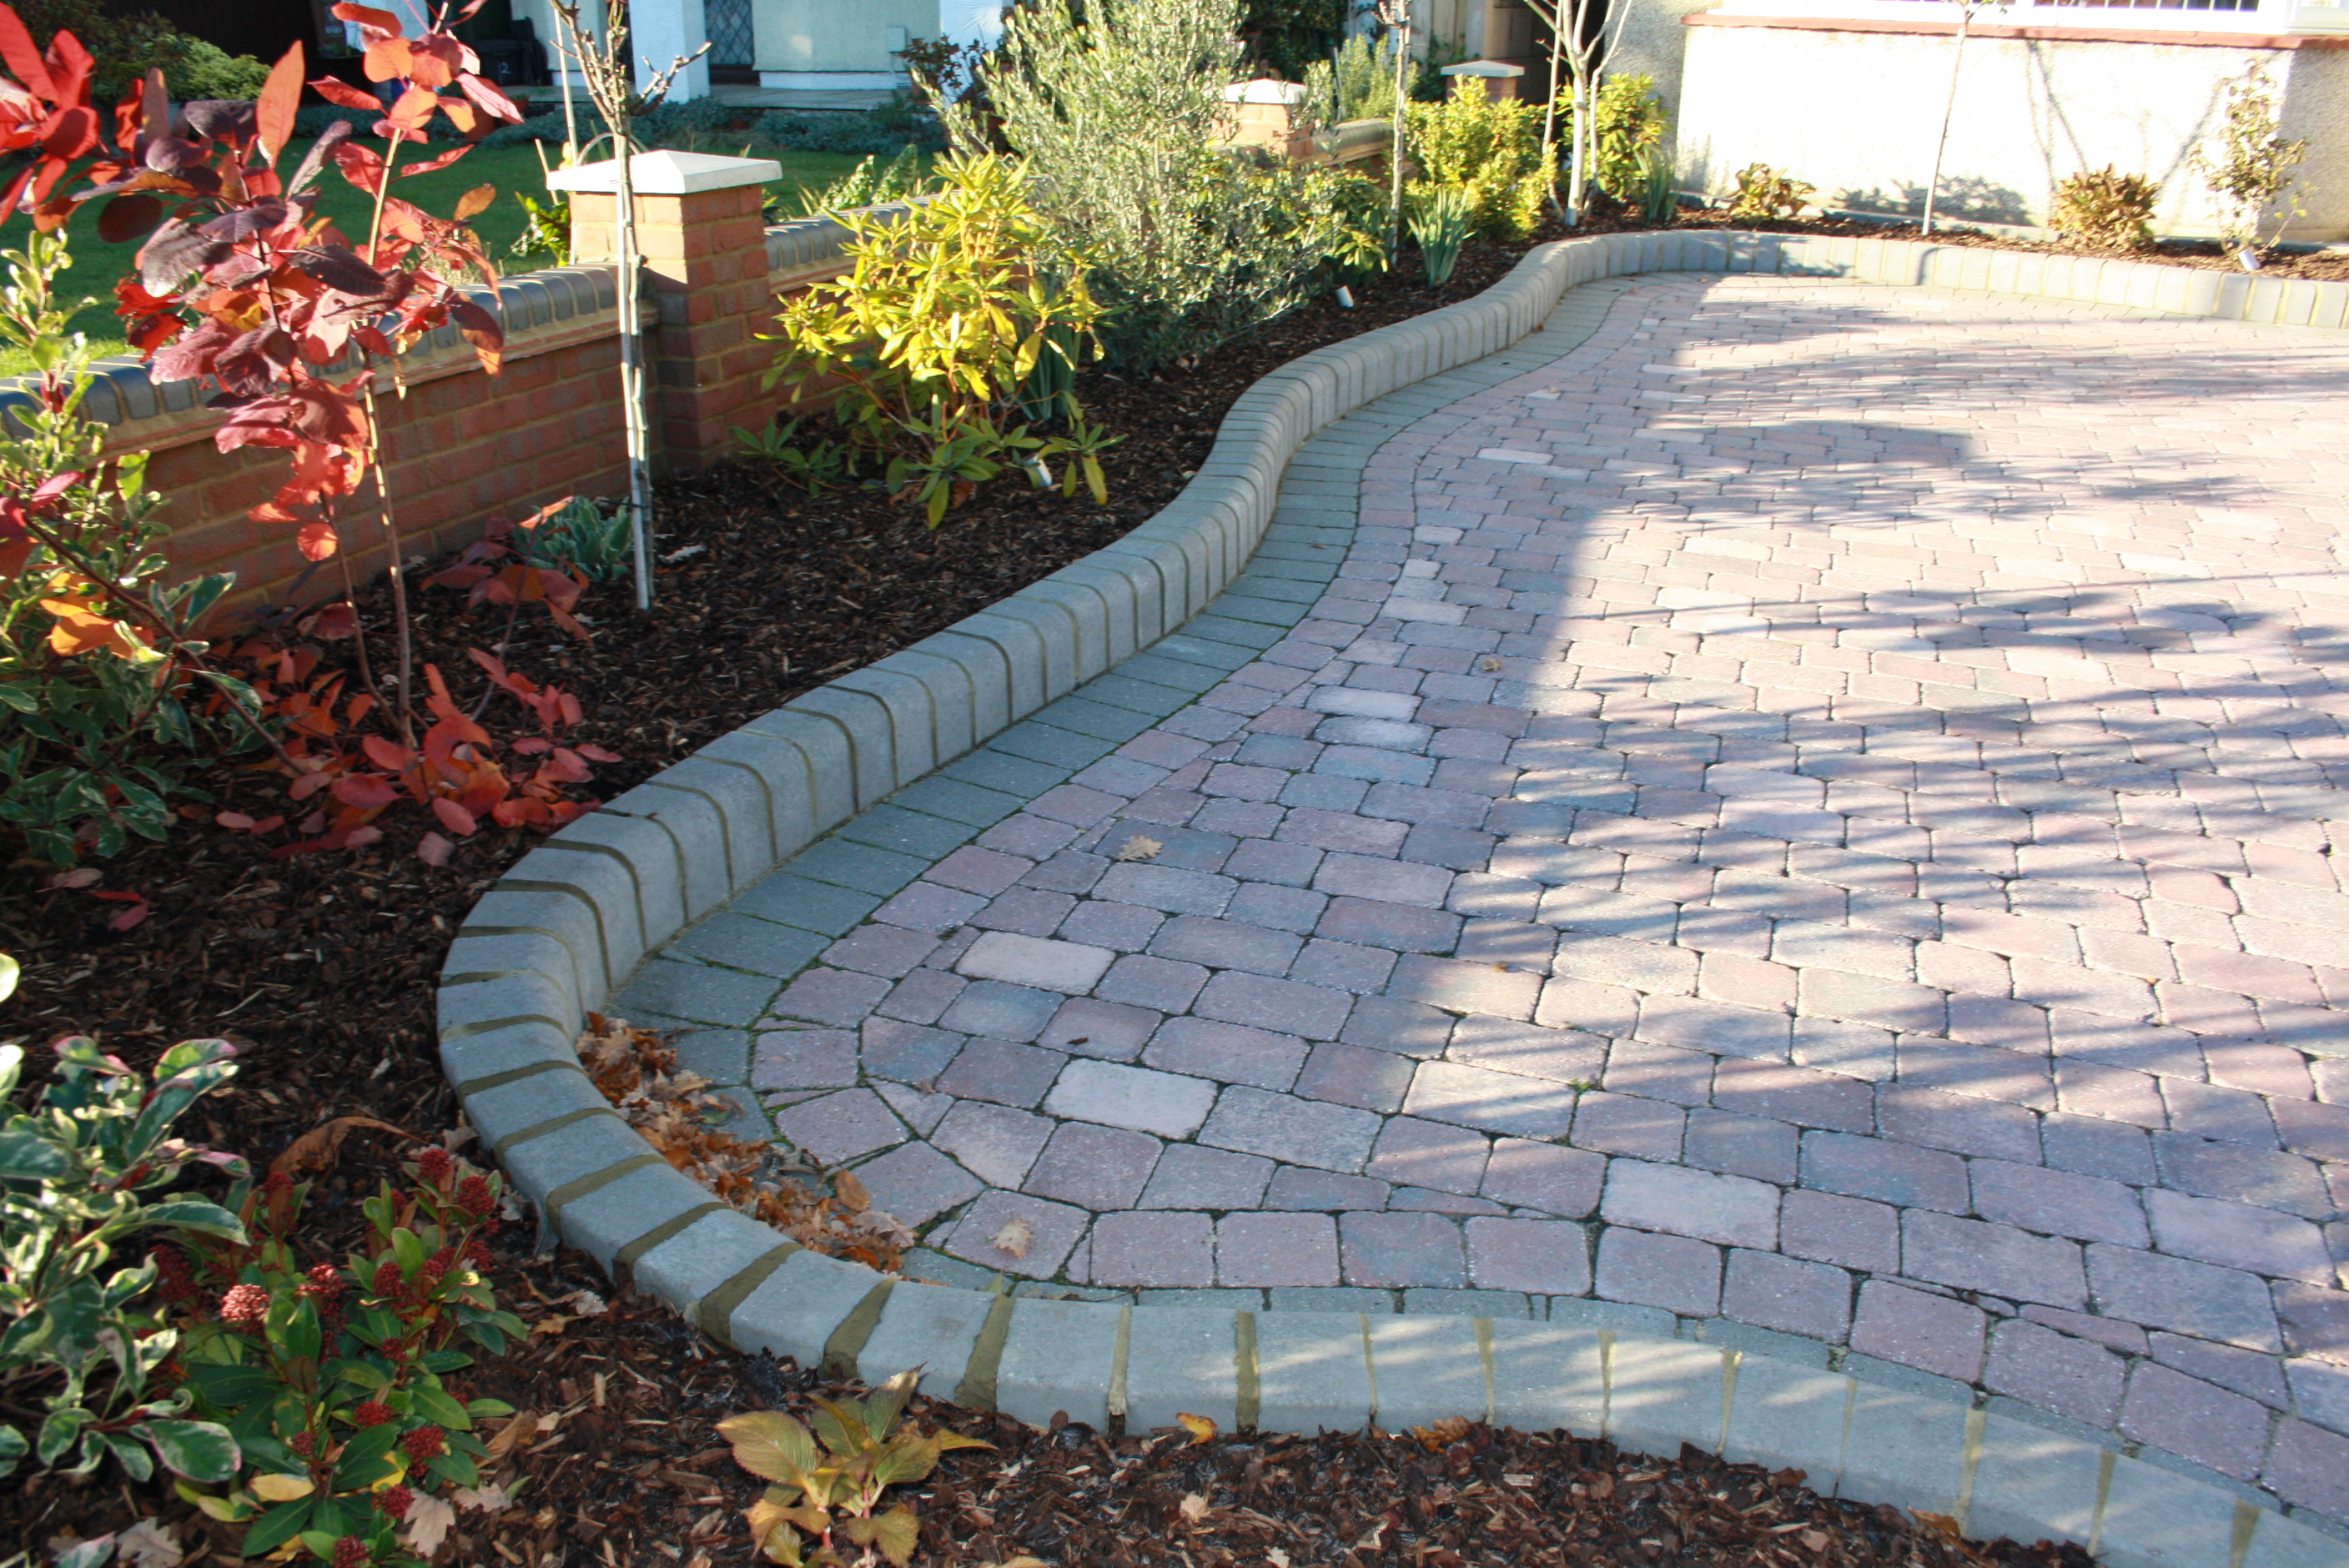 Paving Designs Block Paving - Will Your Driveway Stand Out..For the Right Reasons?